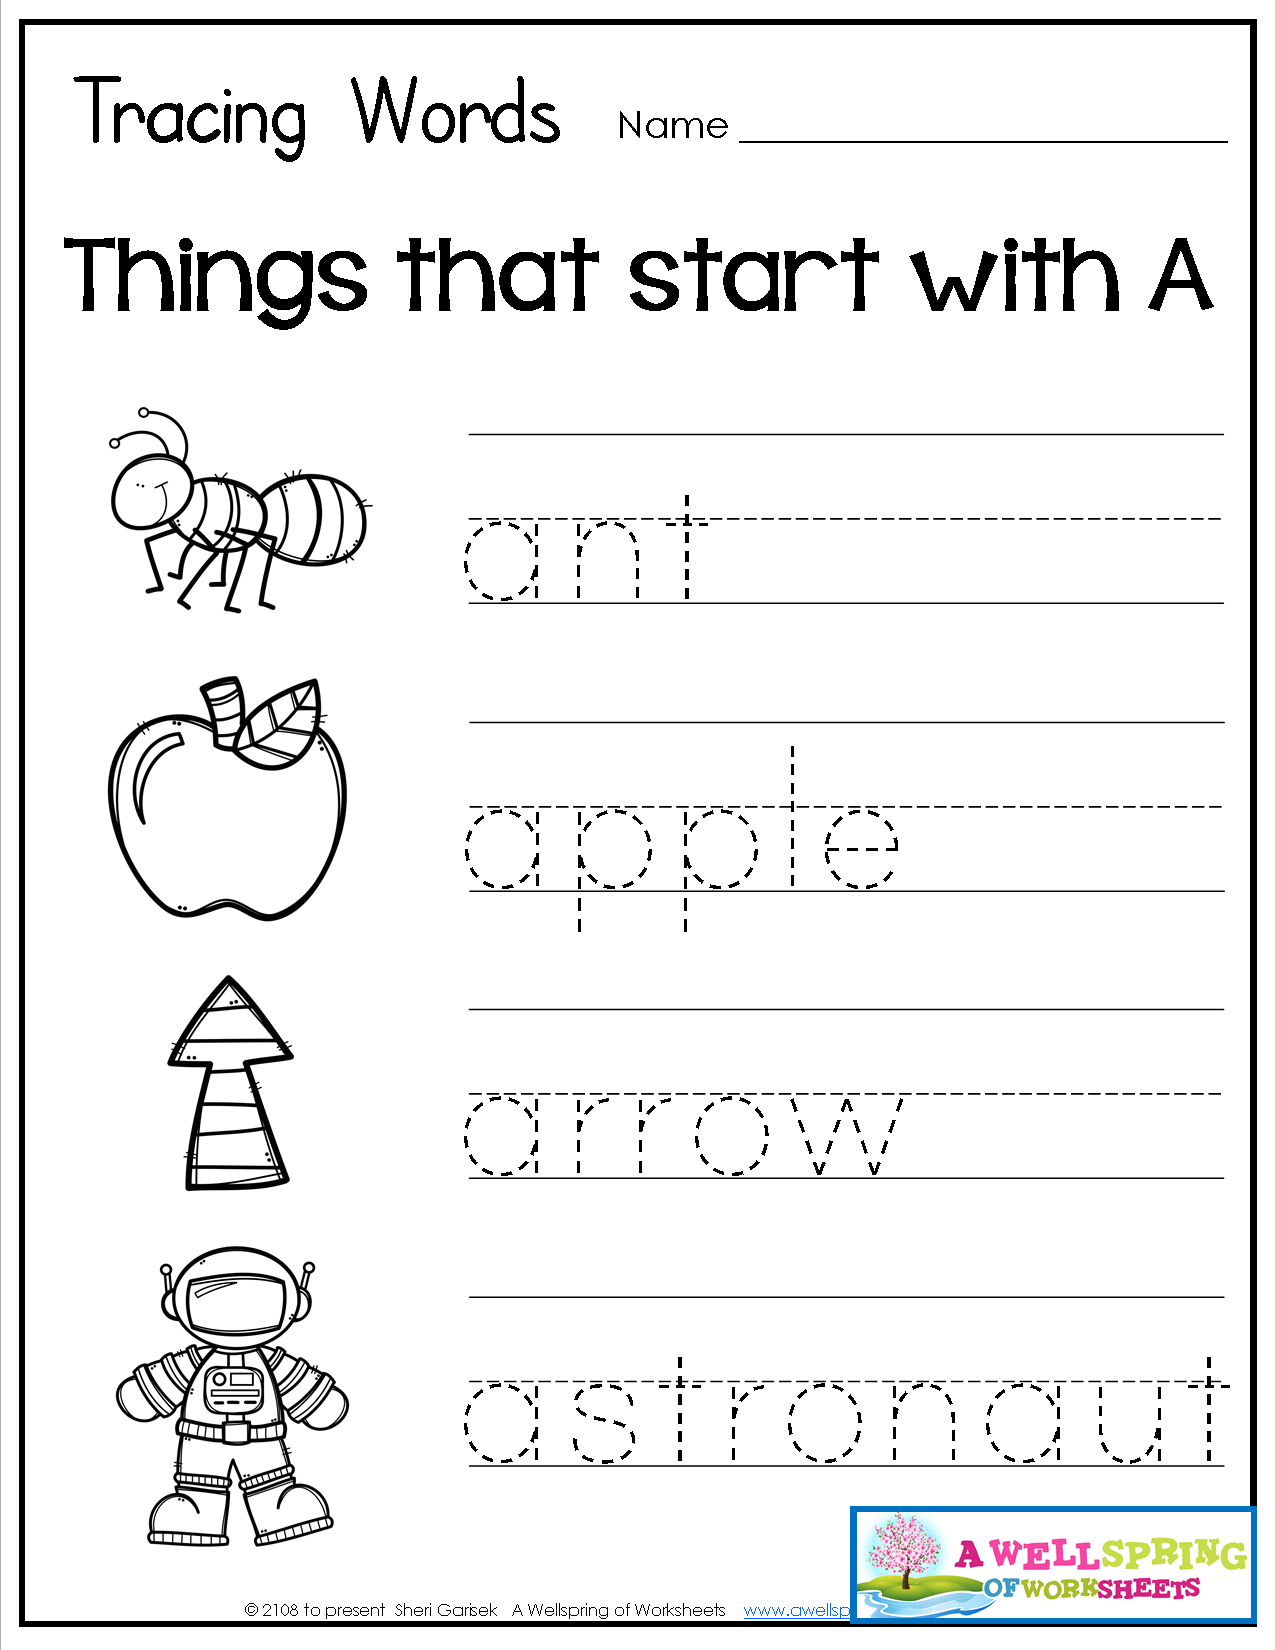 Tracing Words - Things That Start With A-Z Worksheets These